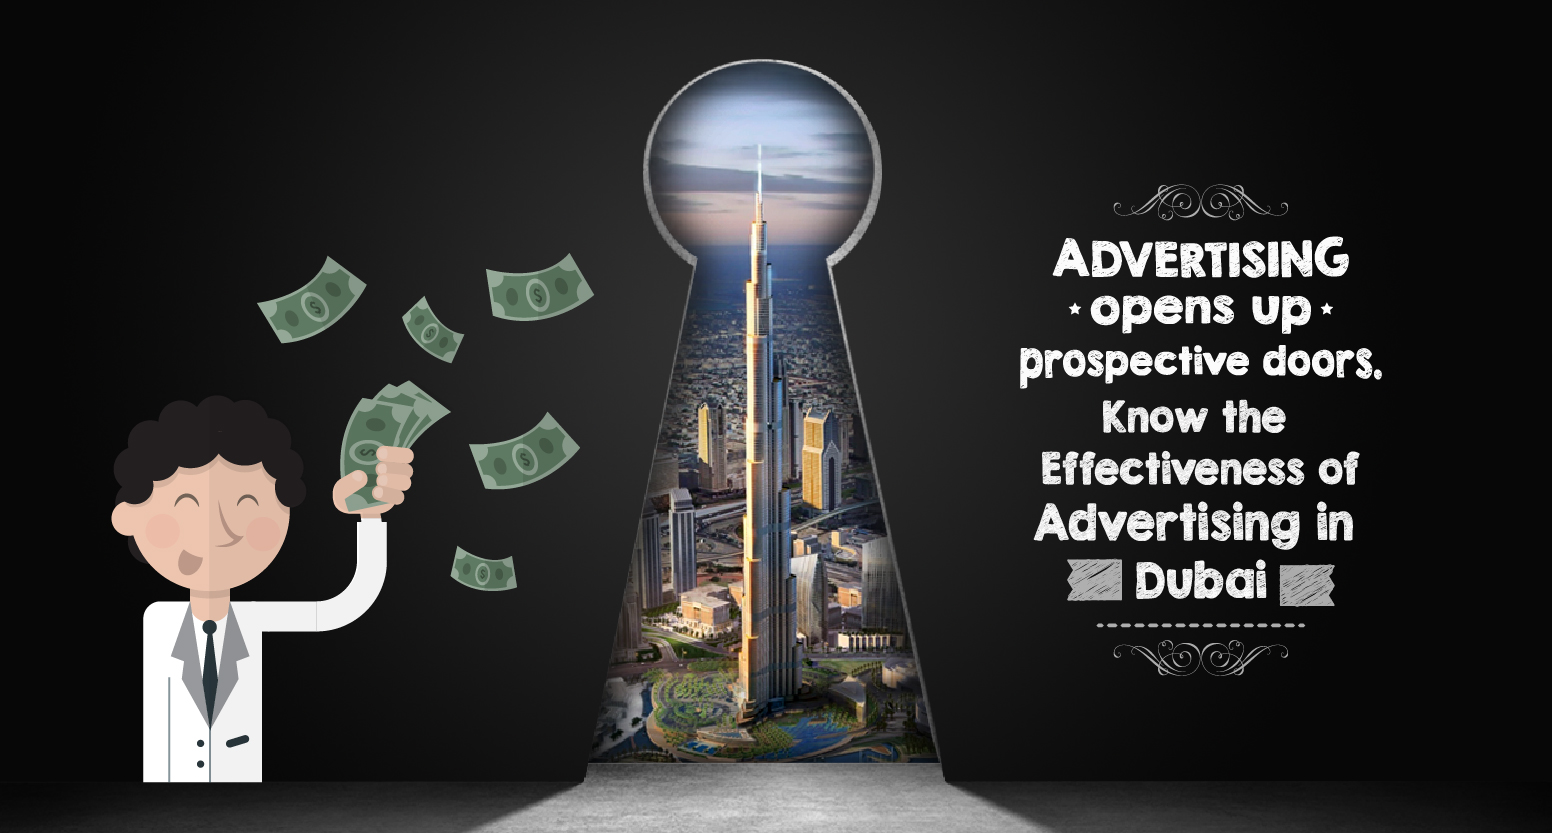 Effectiveness of Advertising in Dubai